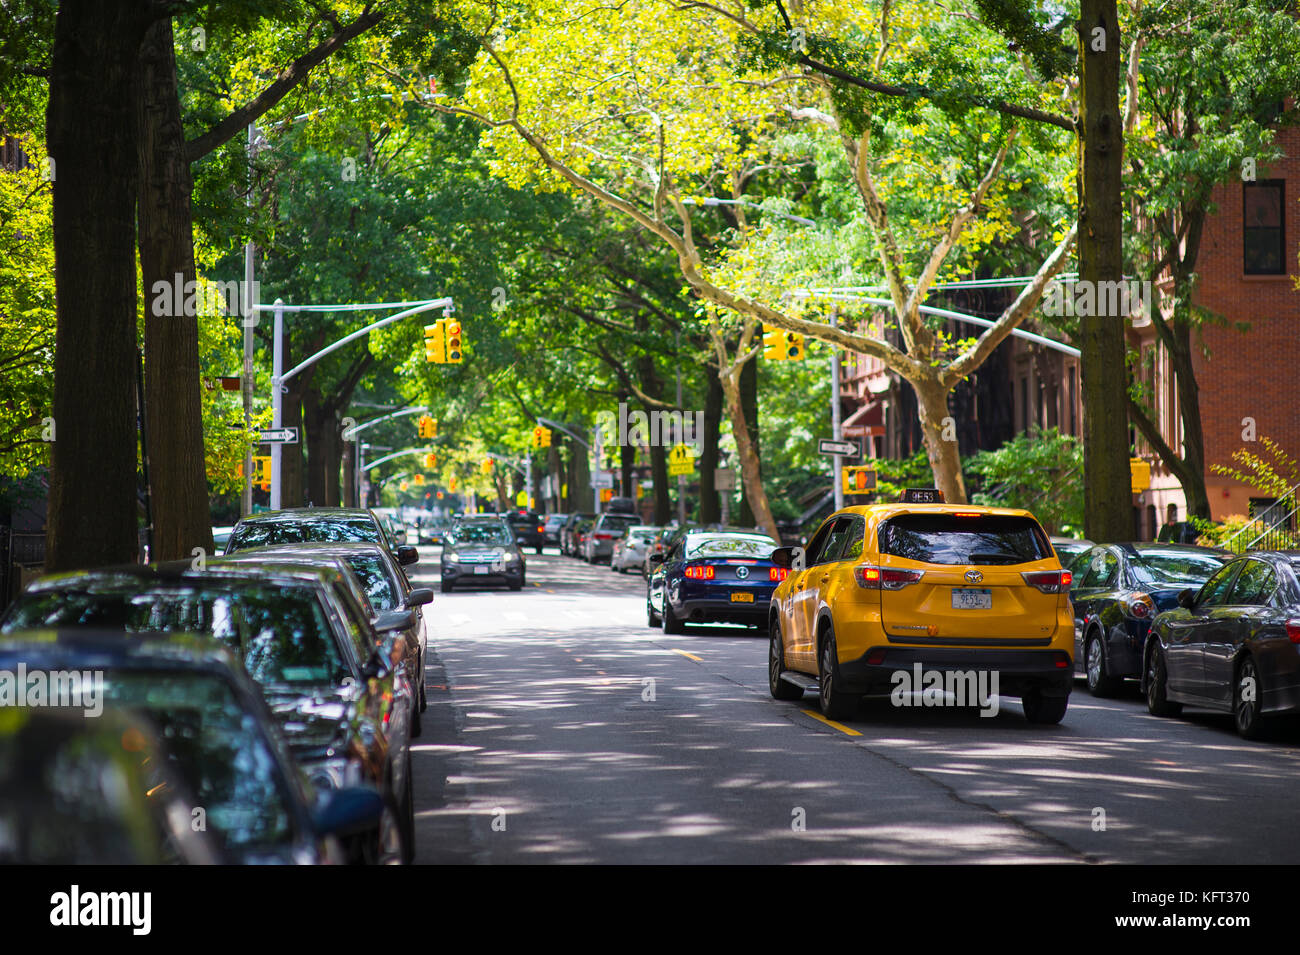 NEW YORK CITY - AUGUST 27, 2017:  A NYC yellow cab drives along a leafy street in Park Slope, Brooklyn. - Stock Image